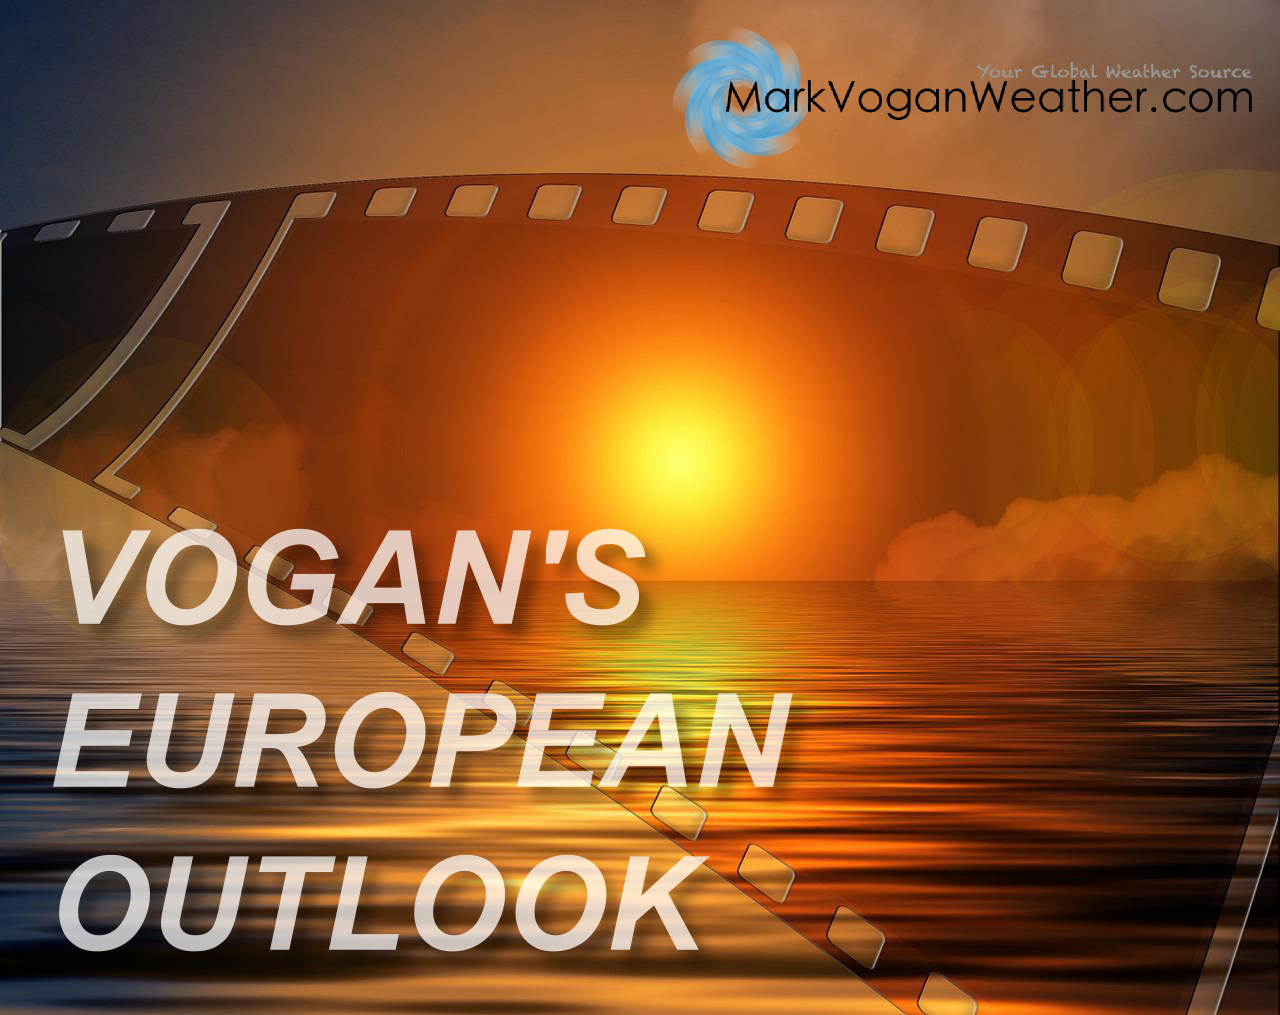 SUN 2 NOV: VOGAN'S EUROPEAN WINTER OUTLOOK